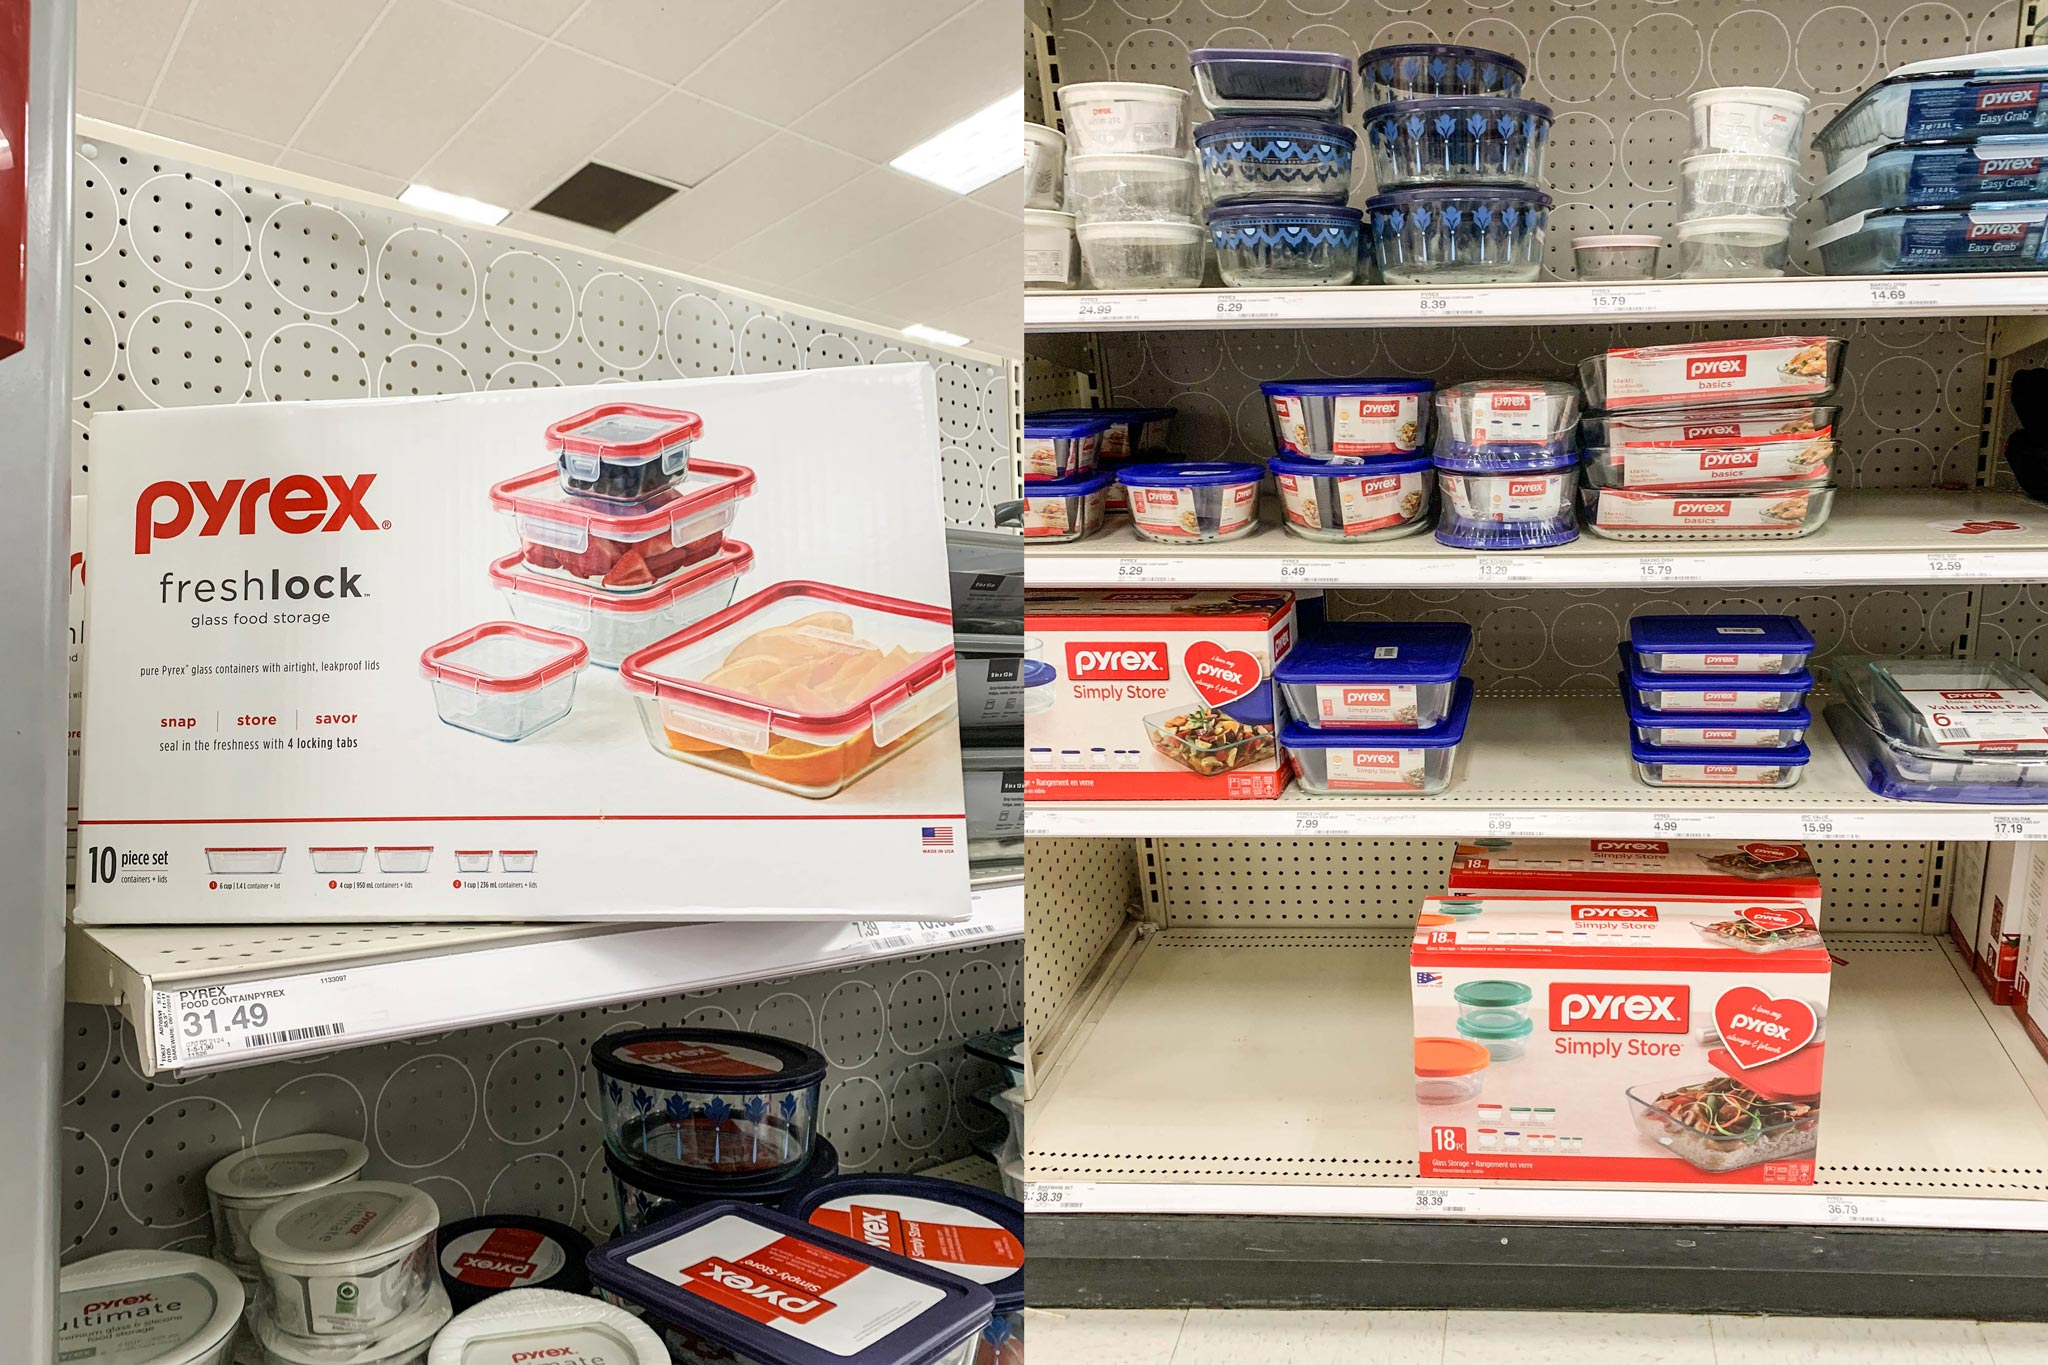 Some Pyrex containers available at my local Target.